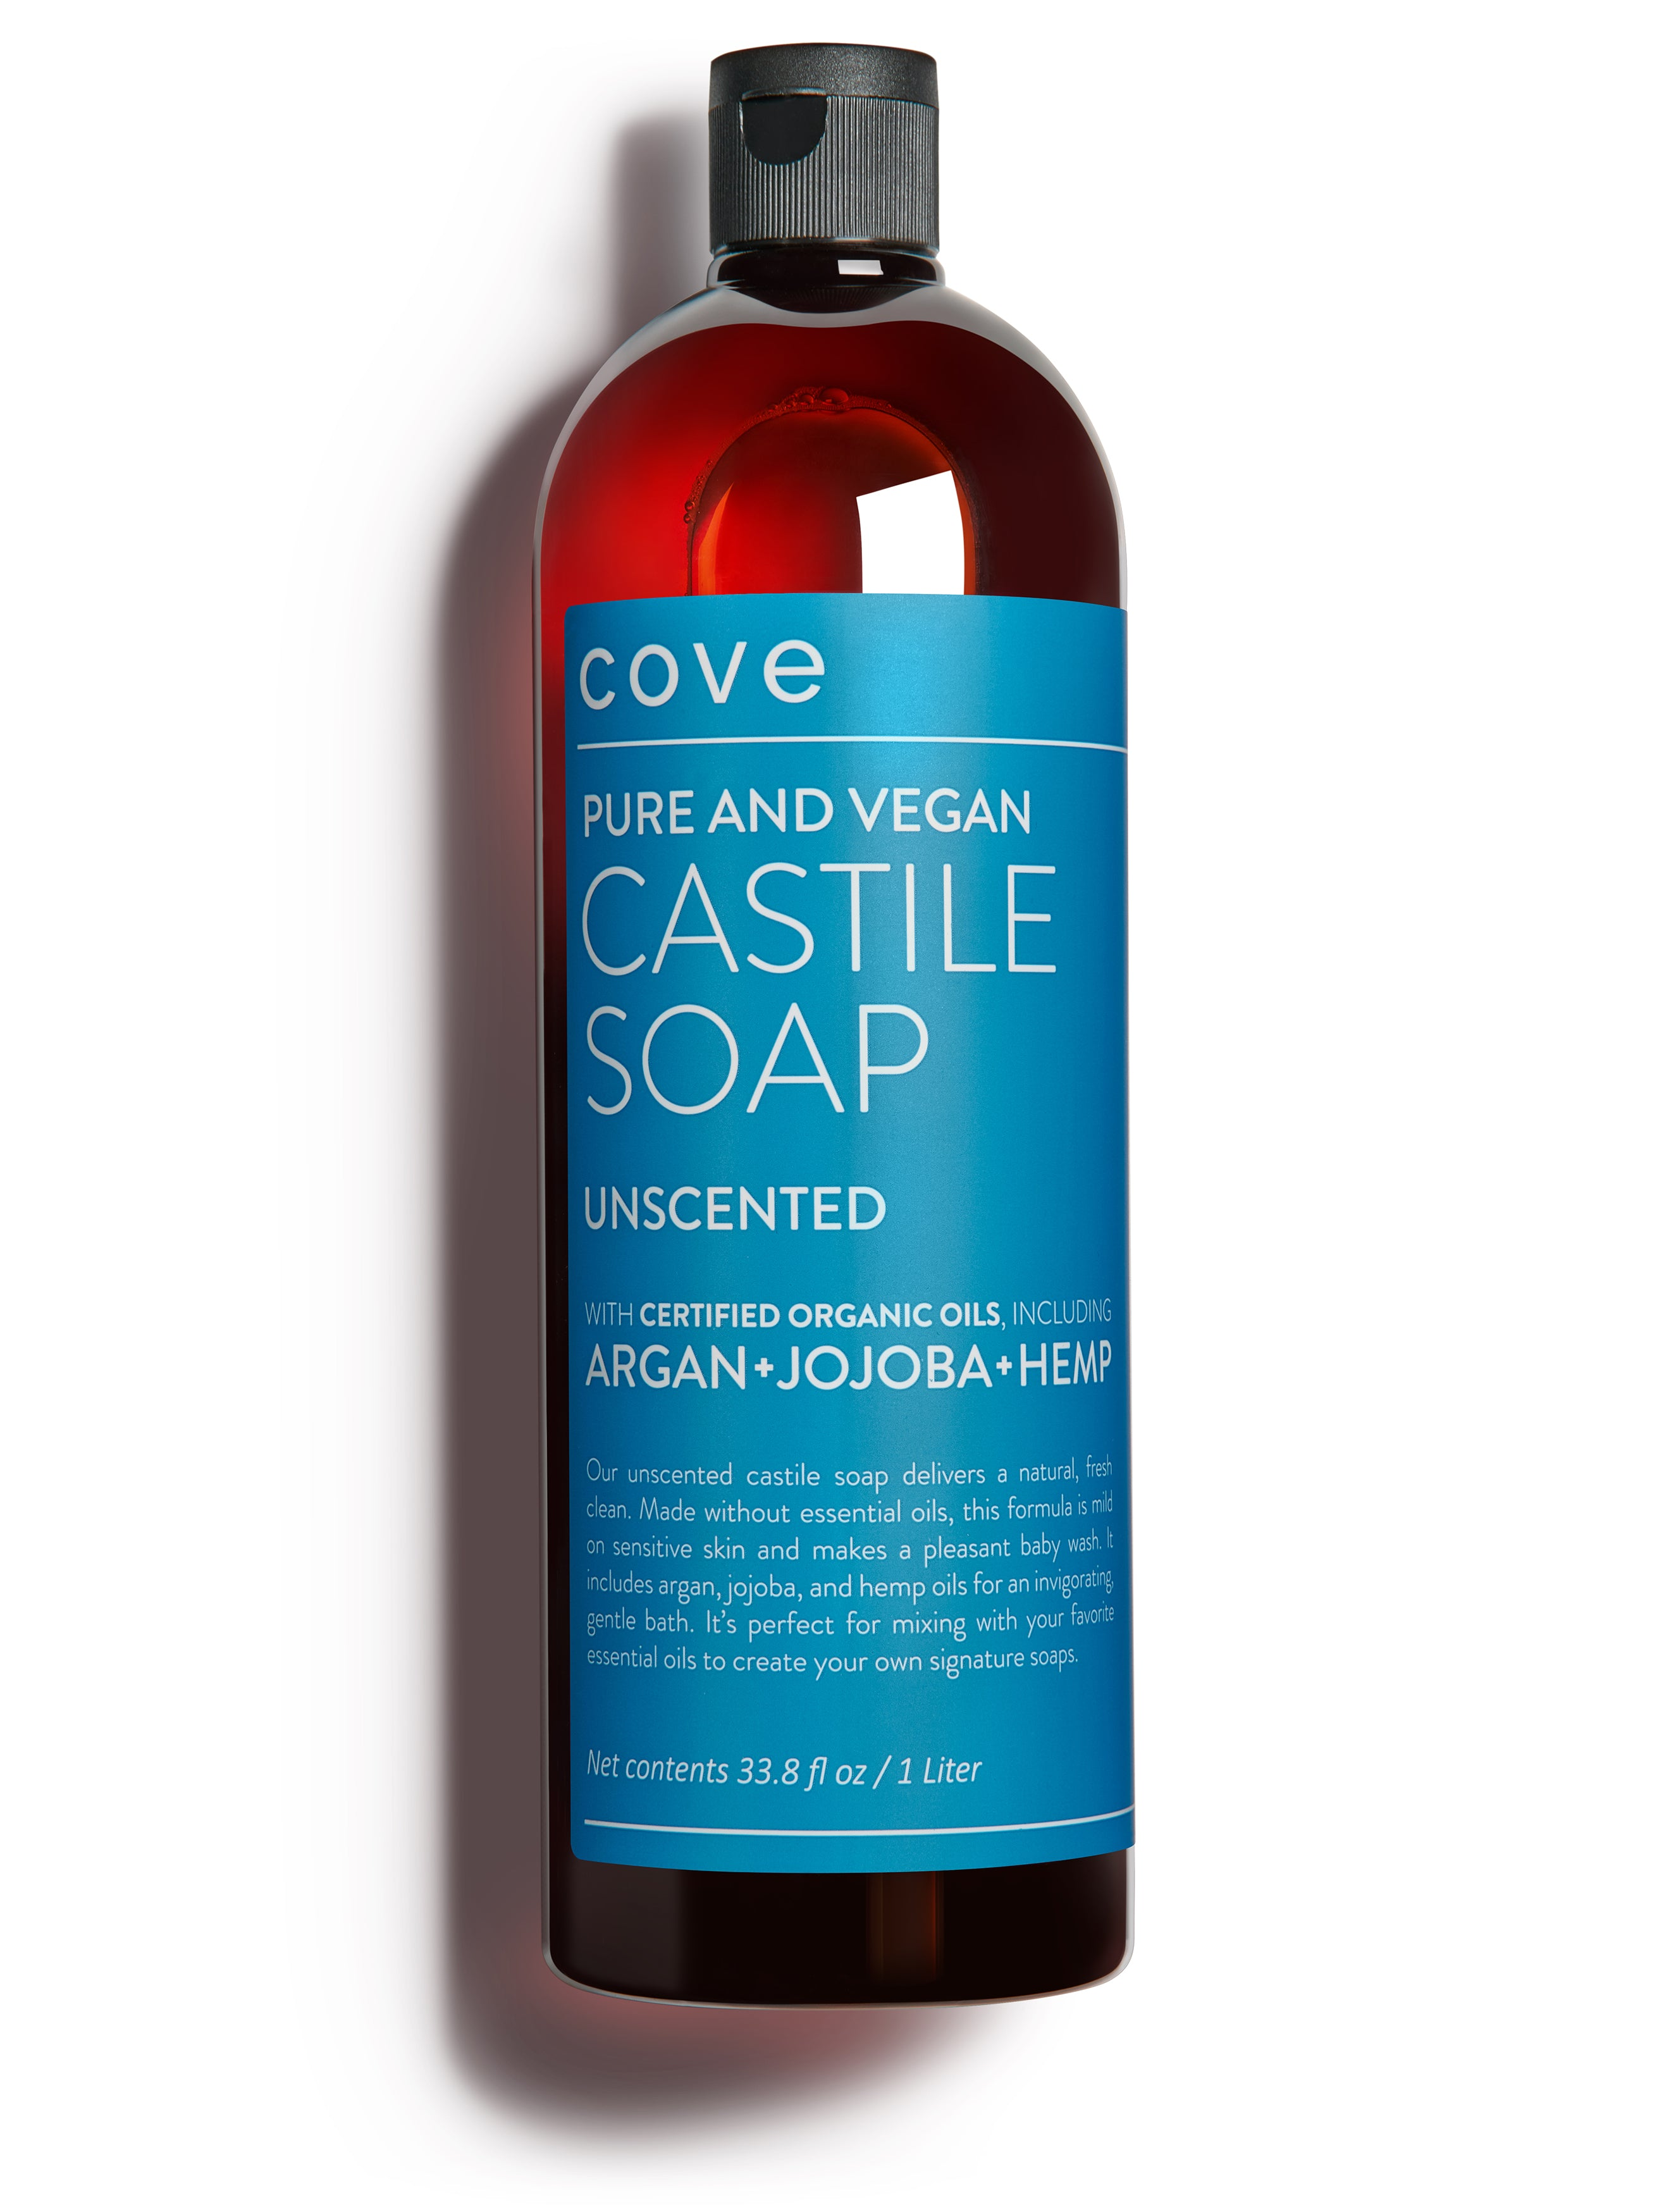 Cove Unscented (1 Liter)